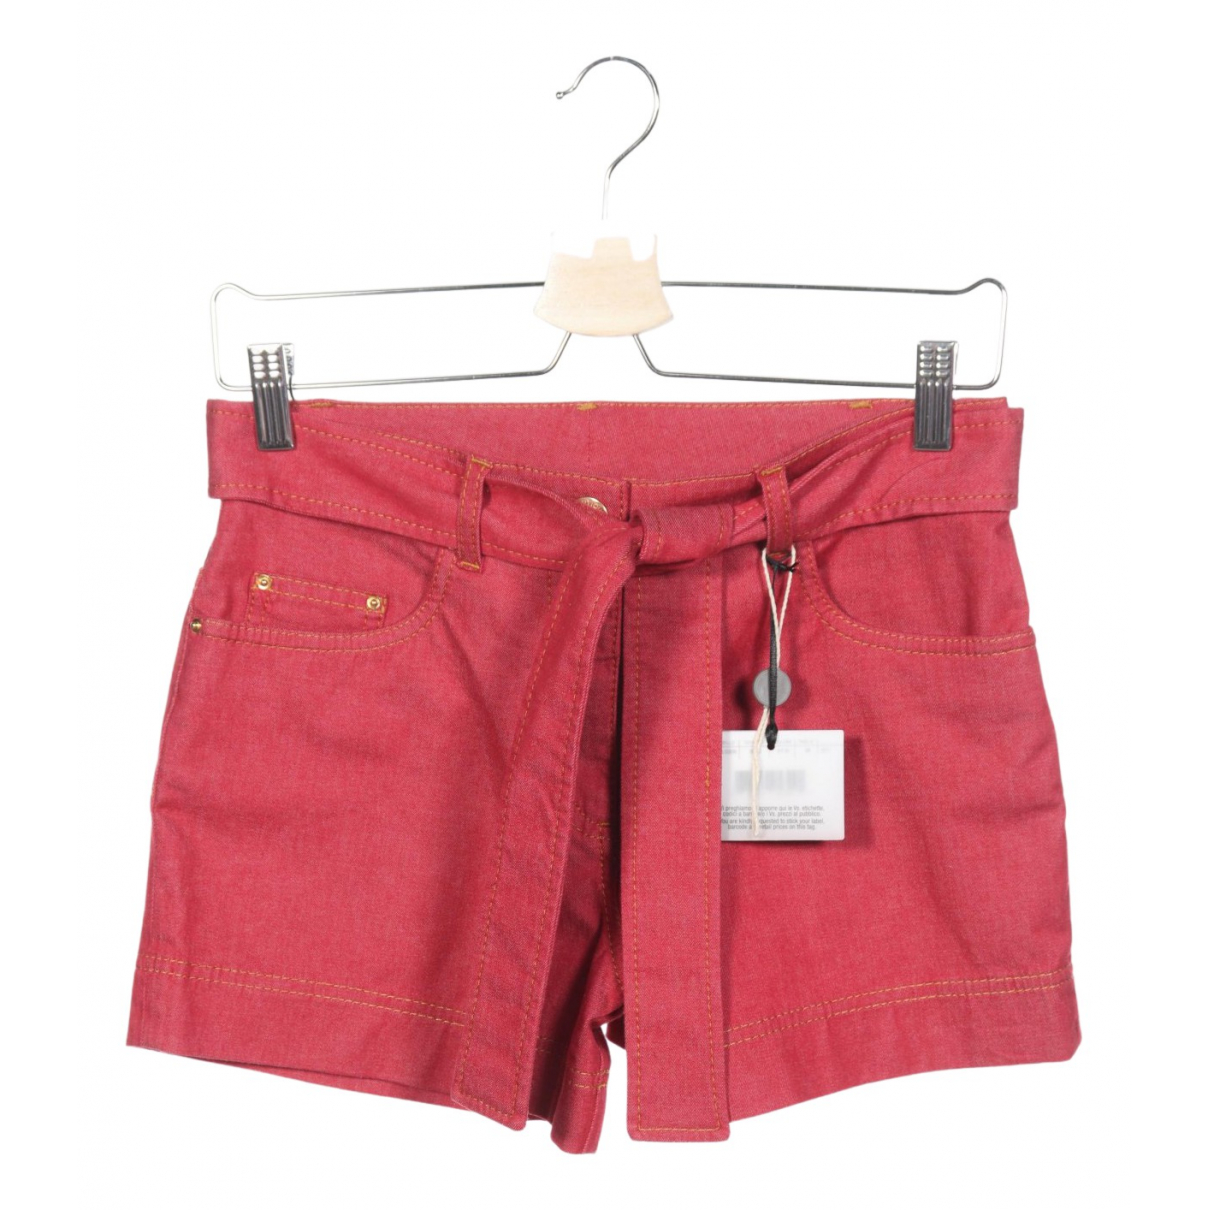 Moschino \N Shorts in  Rot Baumwolle